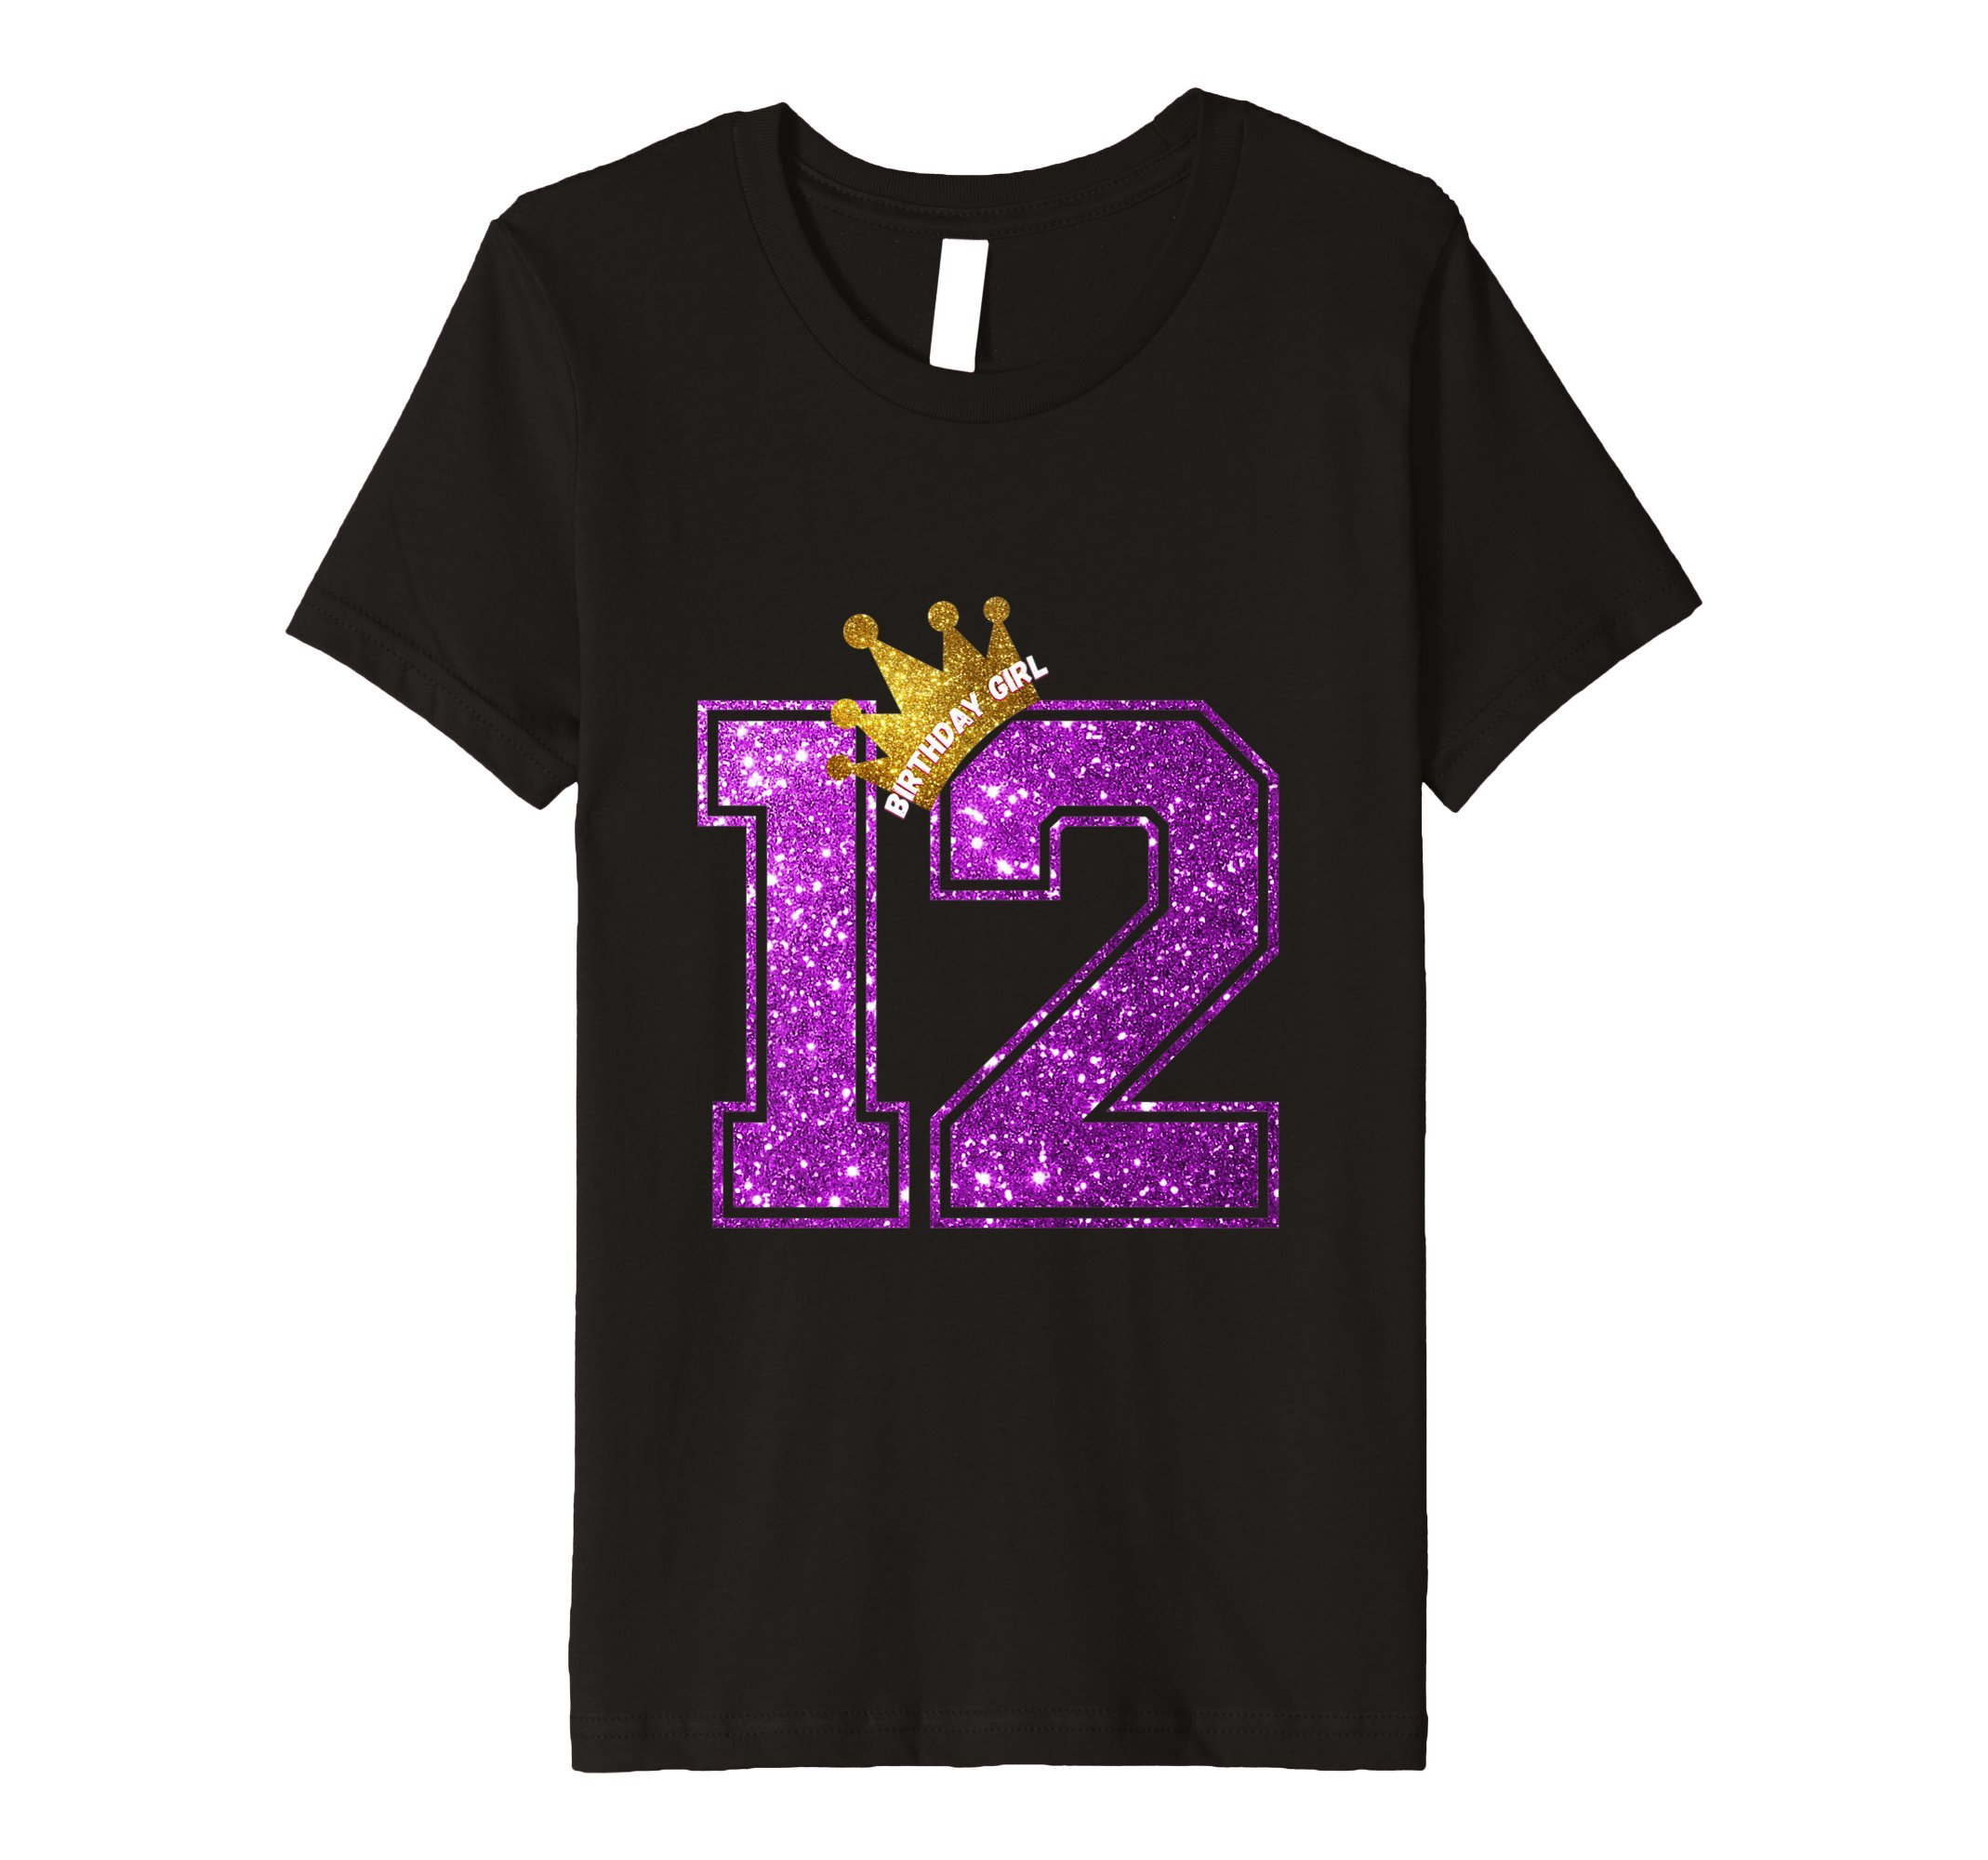 Kids 12 Year Old Birthday Shirt - Girls 12th Birthday Shirt 12 Black